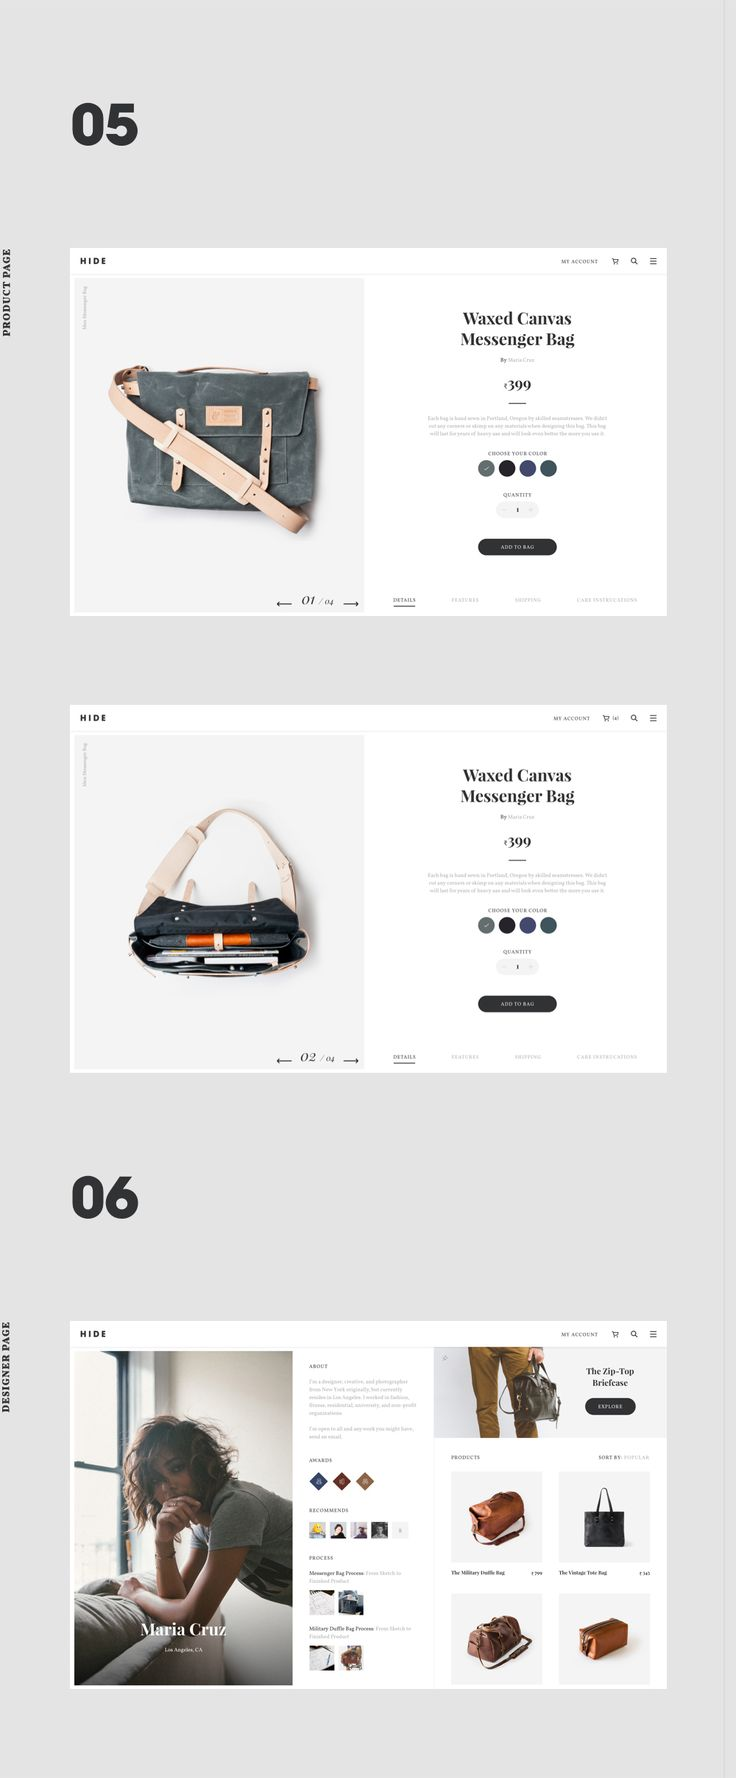 Home front tor design katalog  best diseño images on pinterest  graph design page layout and